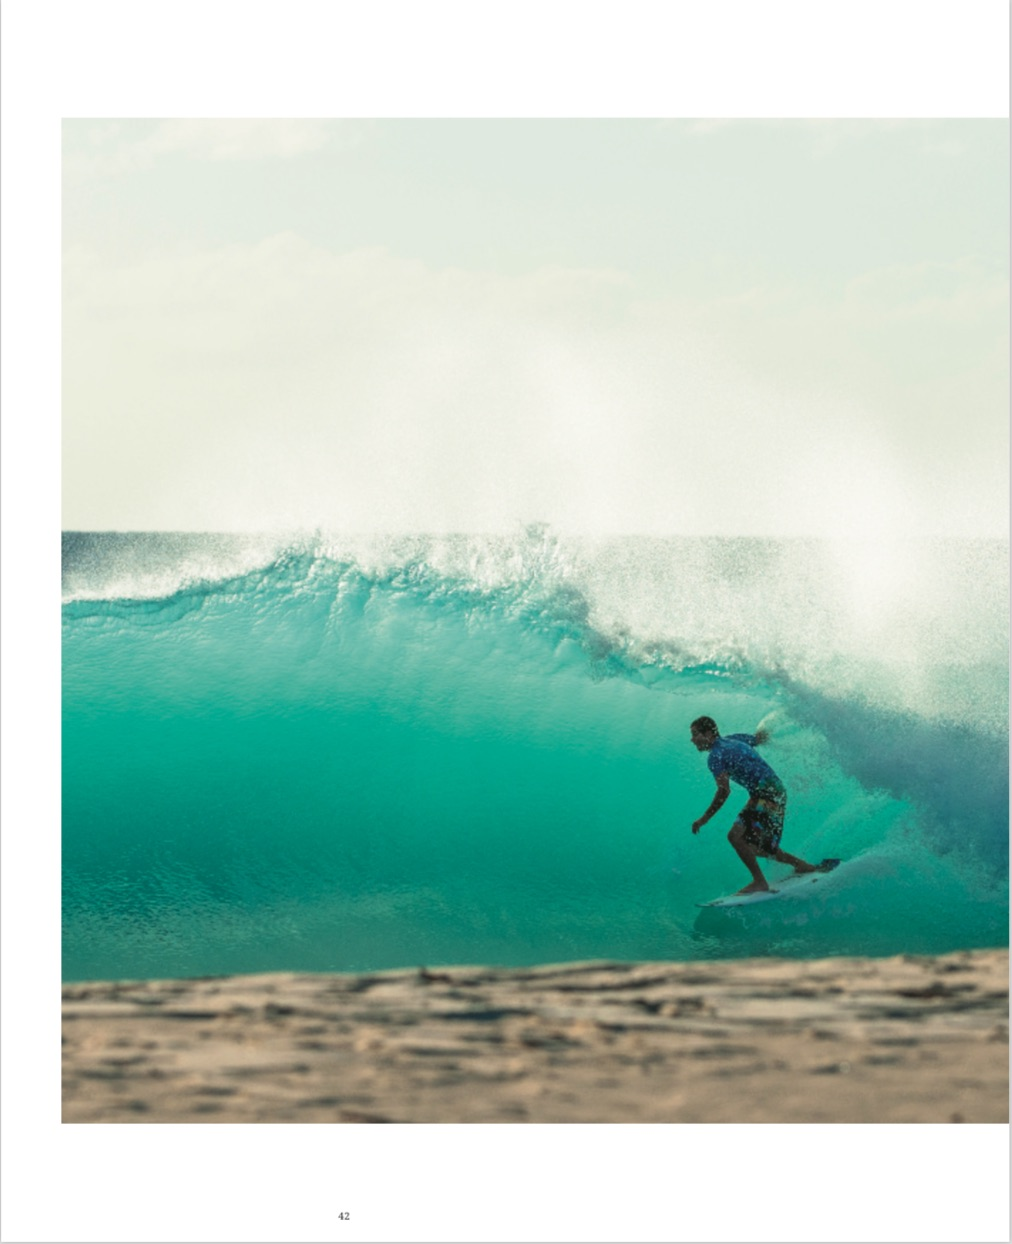 By Chris Burkard from High Tide, A Surf Odyssey: Photographs by Chris Burkard copyright Lannoo 2015